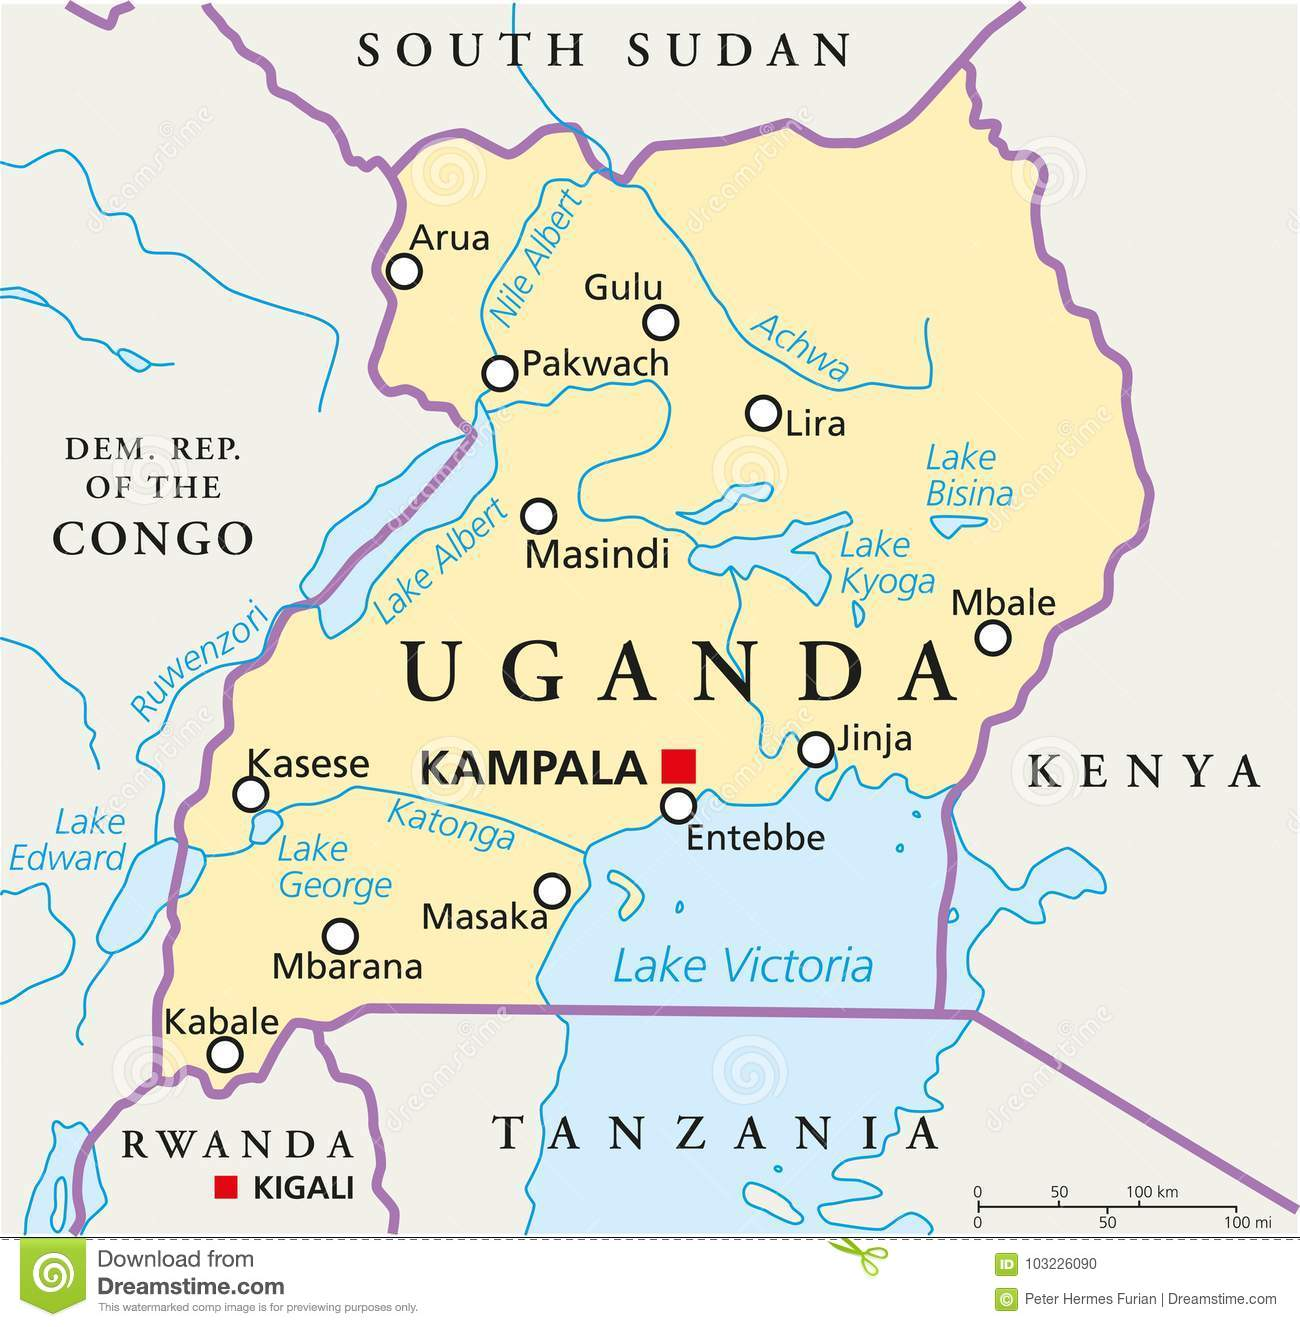 Kampala Uganda Map Uganda Political Map stock vector. Illustration of illustration